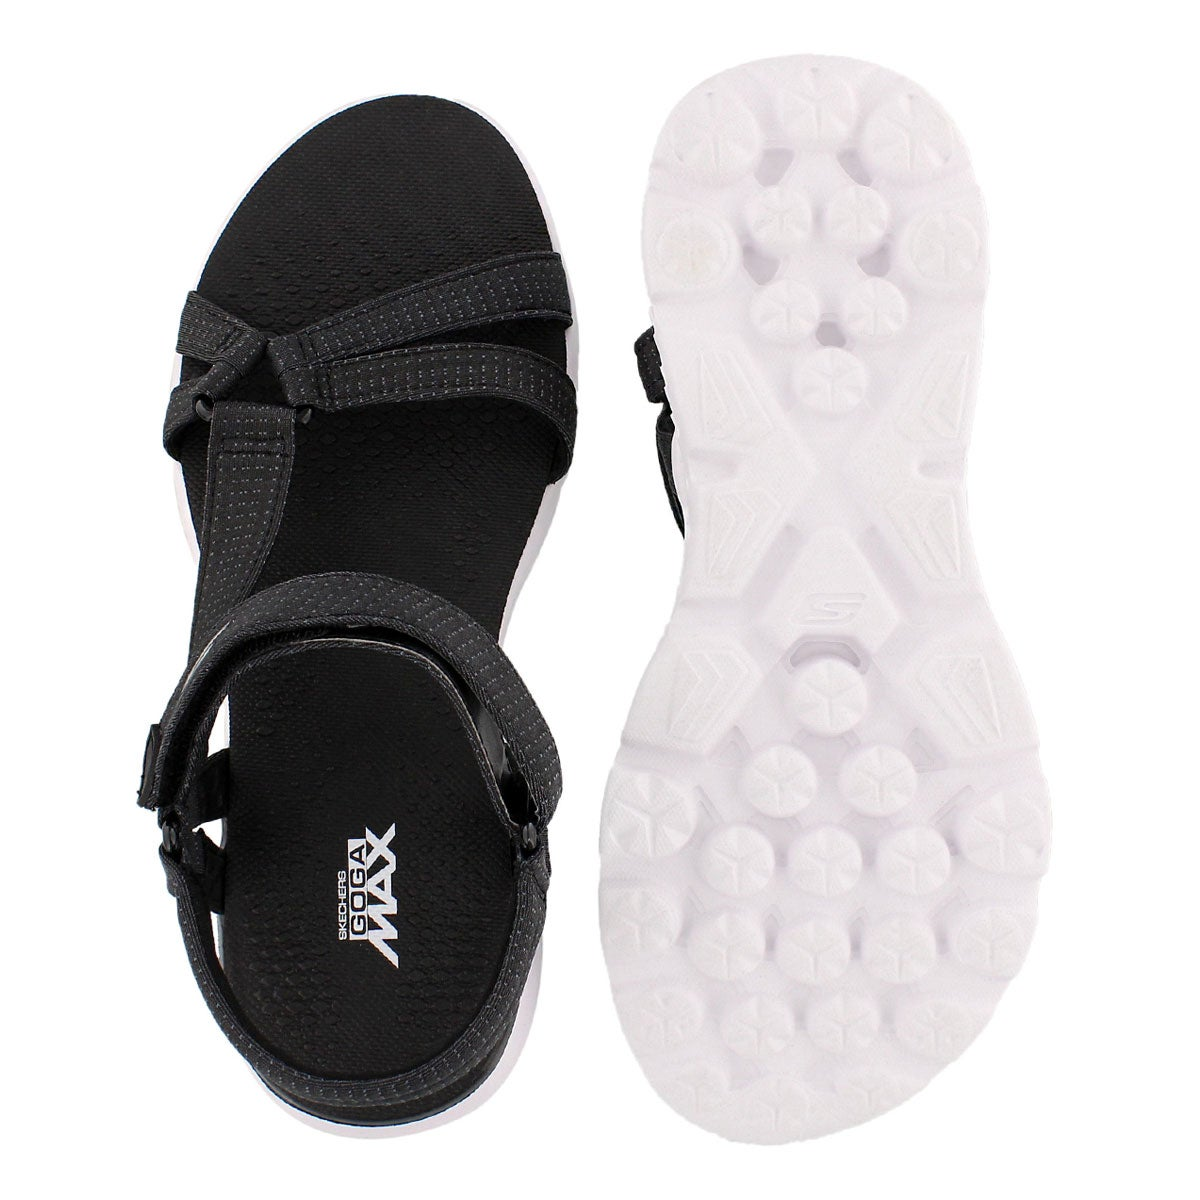 Lds On-The-Go 400 black sport sandal